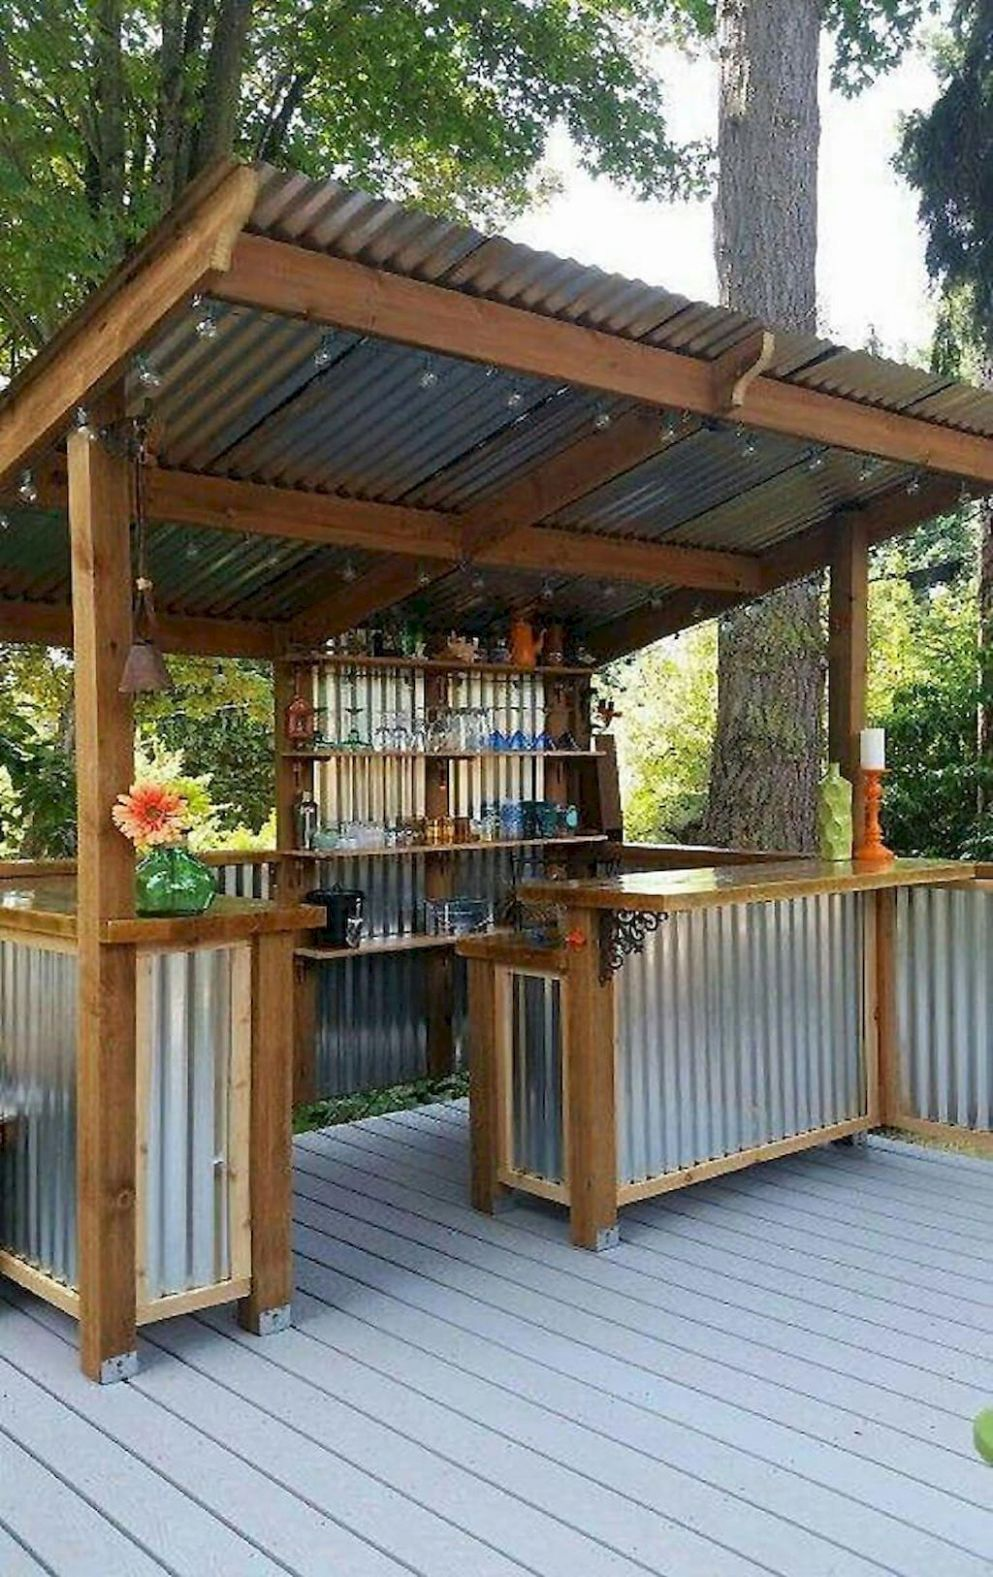 9 Amazing DIY Outdoor Kitchen Ideas On A Budget | Backyard ..